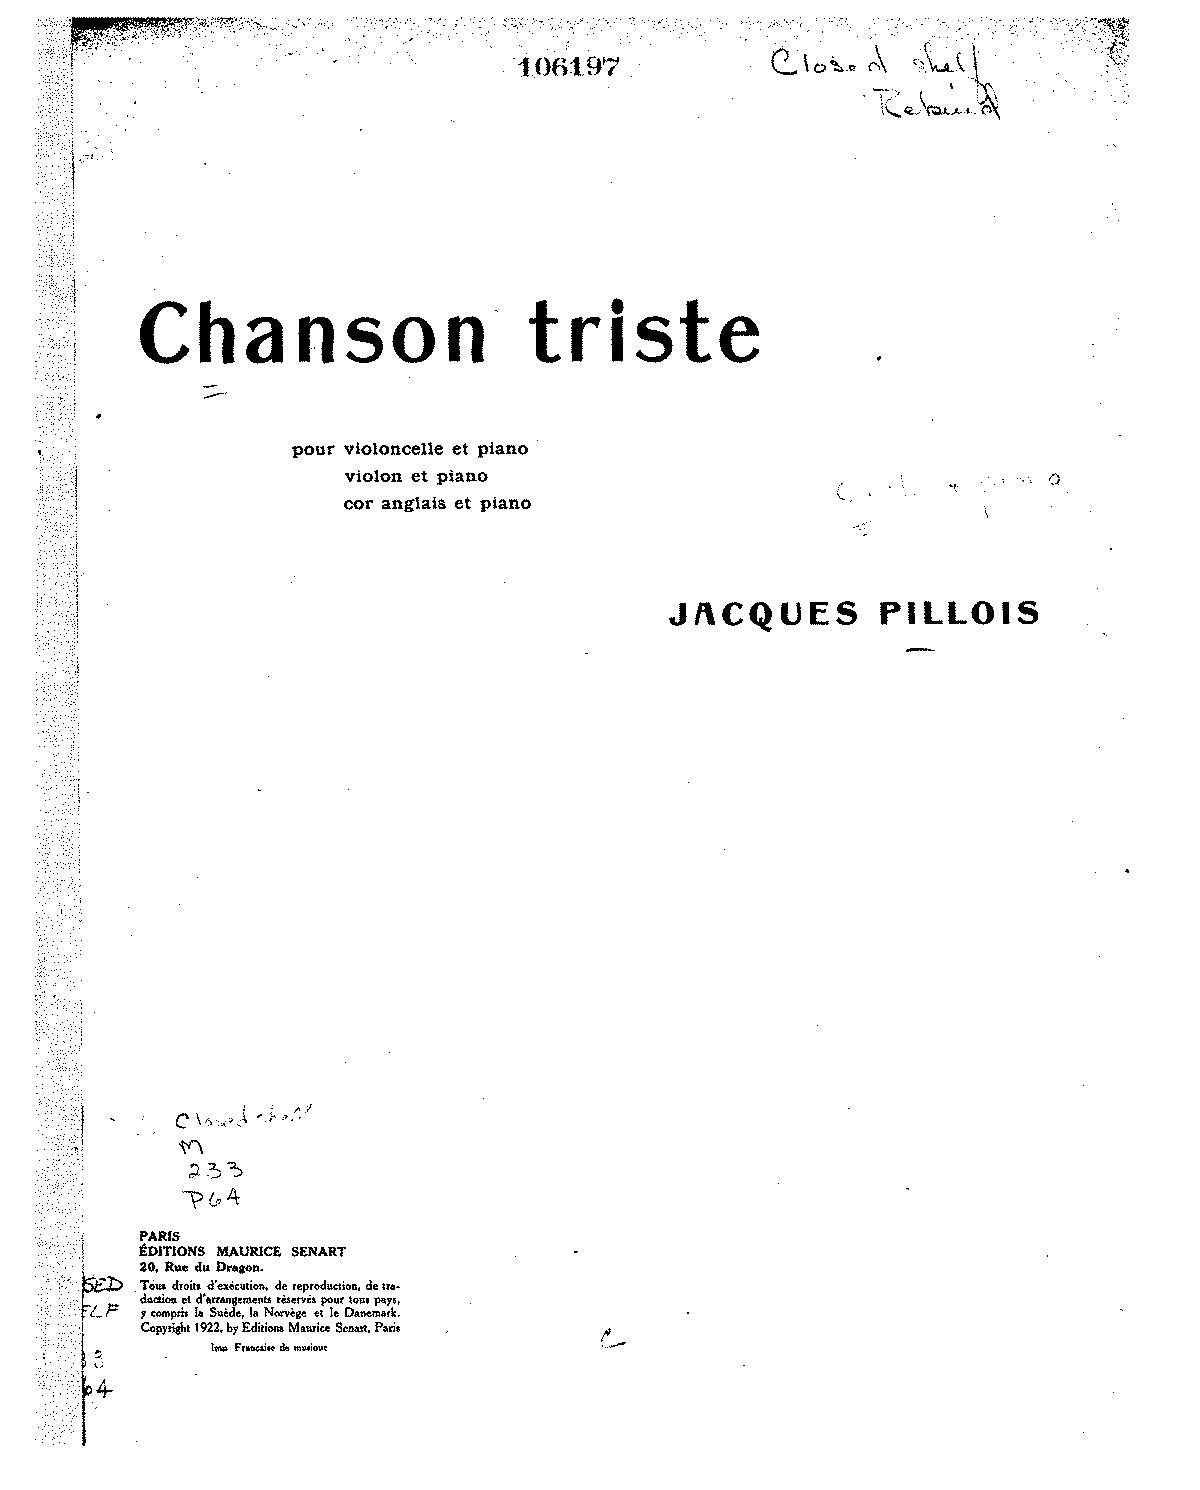 PMLP299832-Pillois - Chanson Triste for Cello and Piano score.pdf